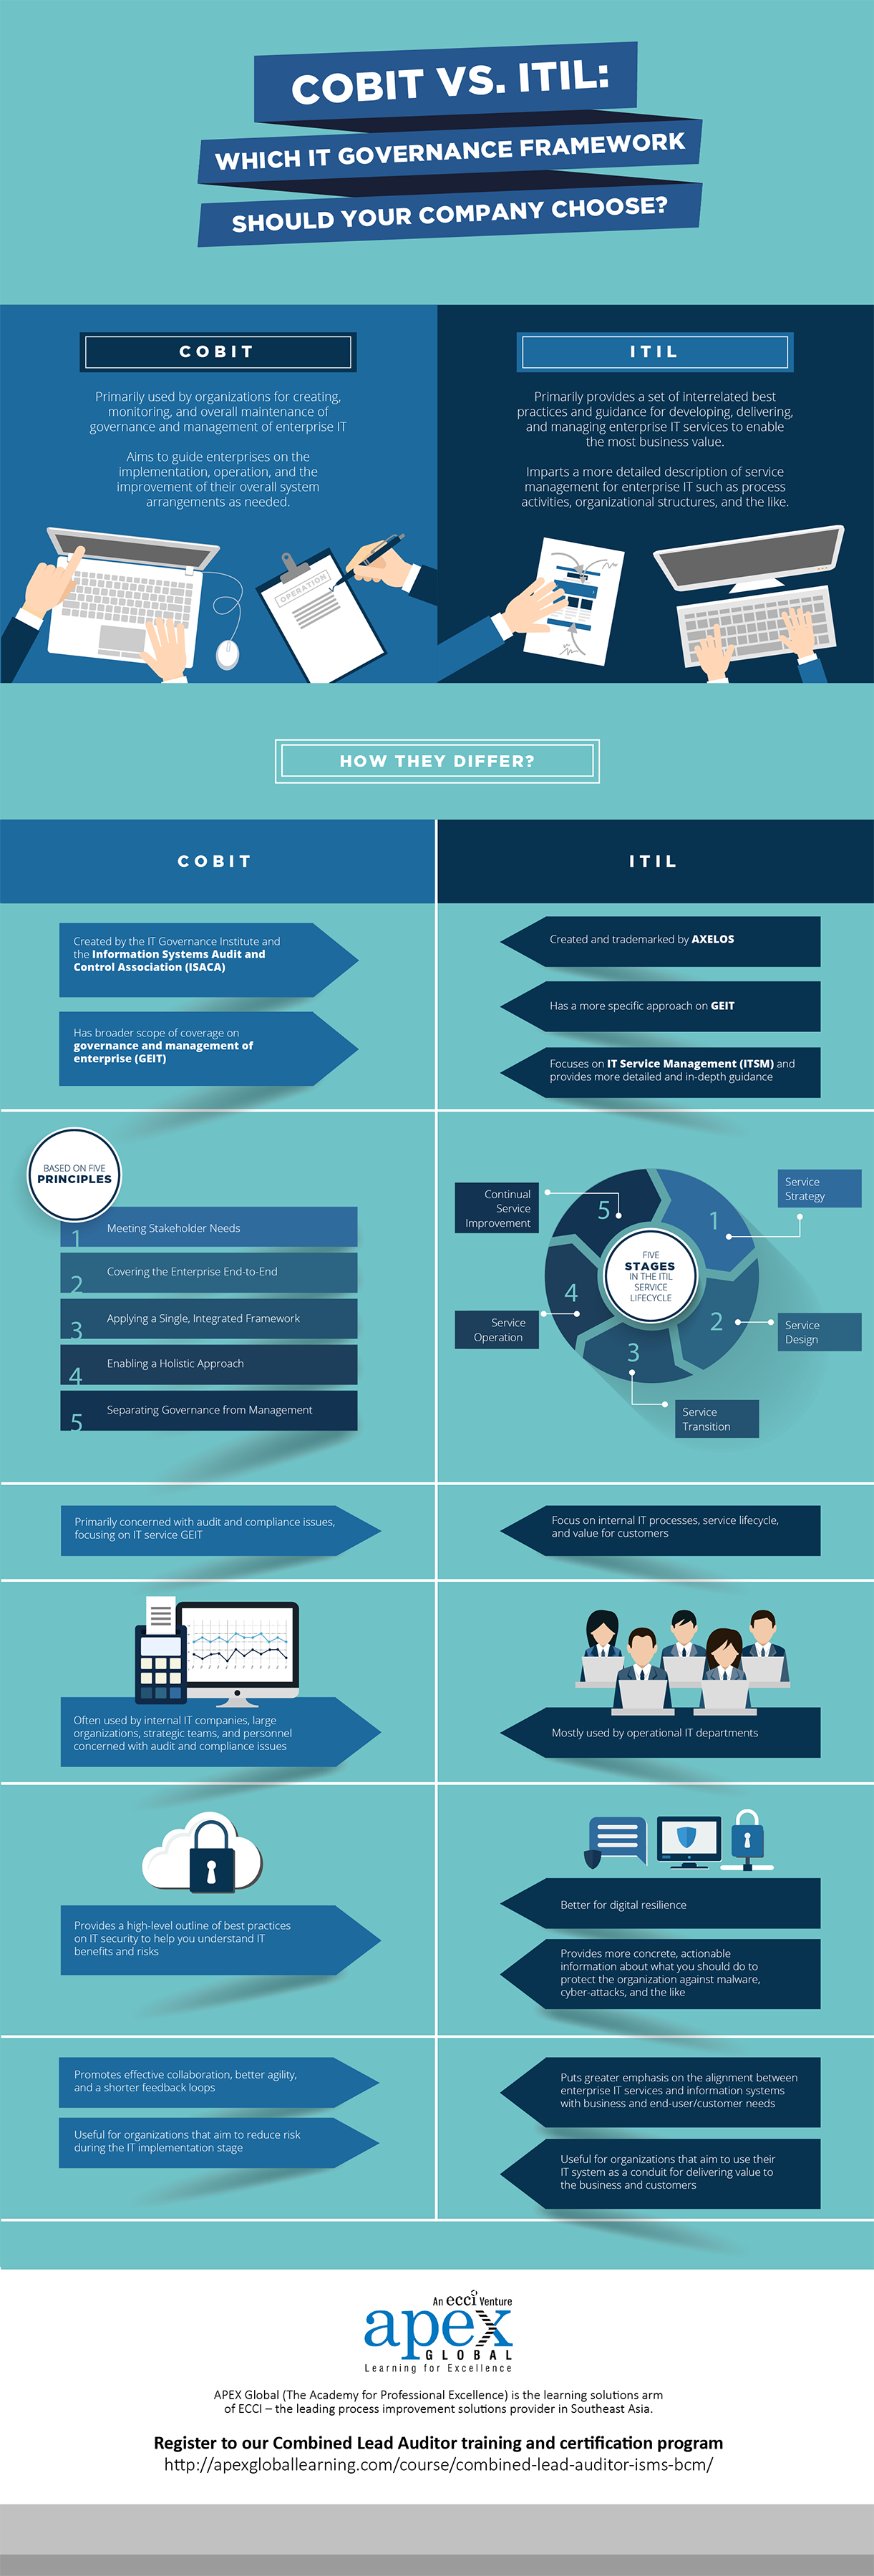 cobit-vs-itil-which-it-governance-framework-should-your-company-choose-infographic-01